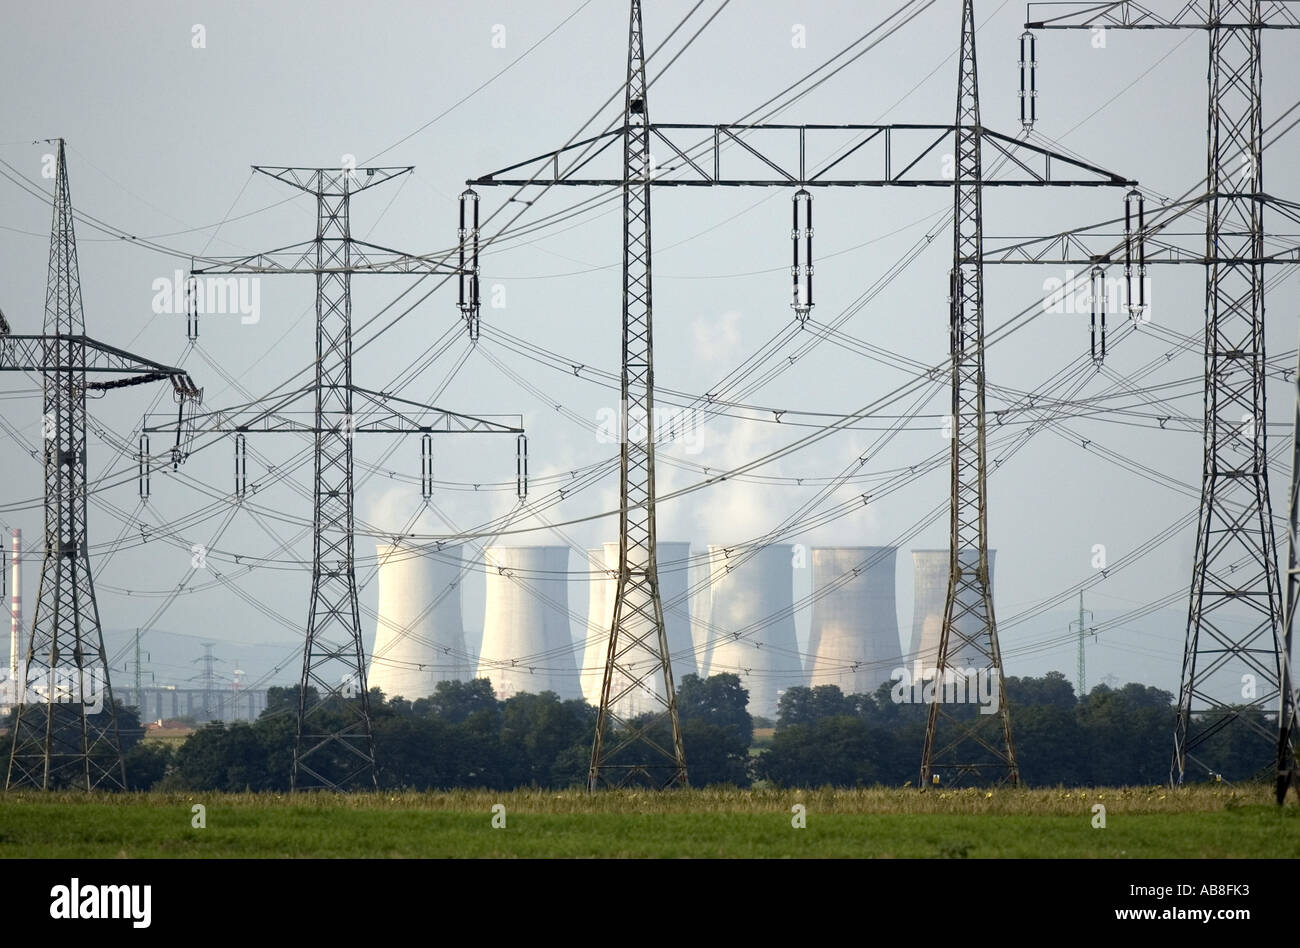 Electrical power plant with cooling towers in the background, Slovakia